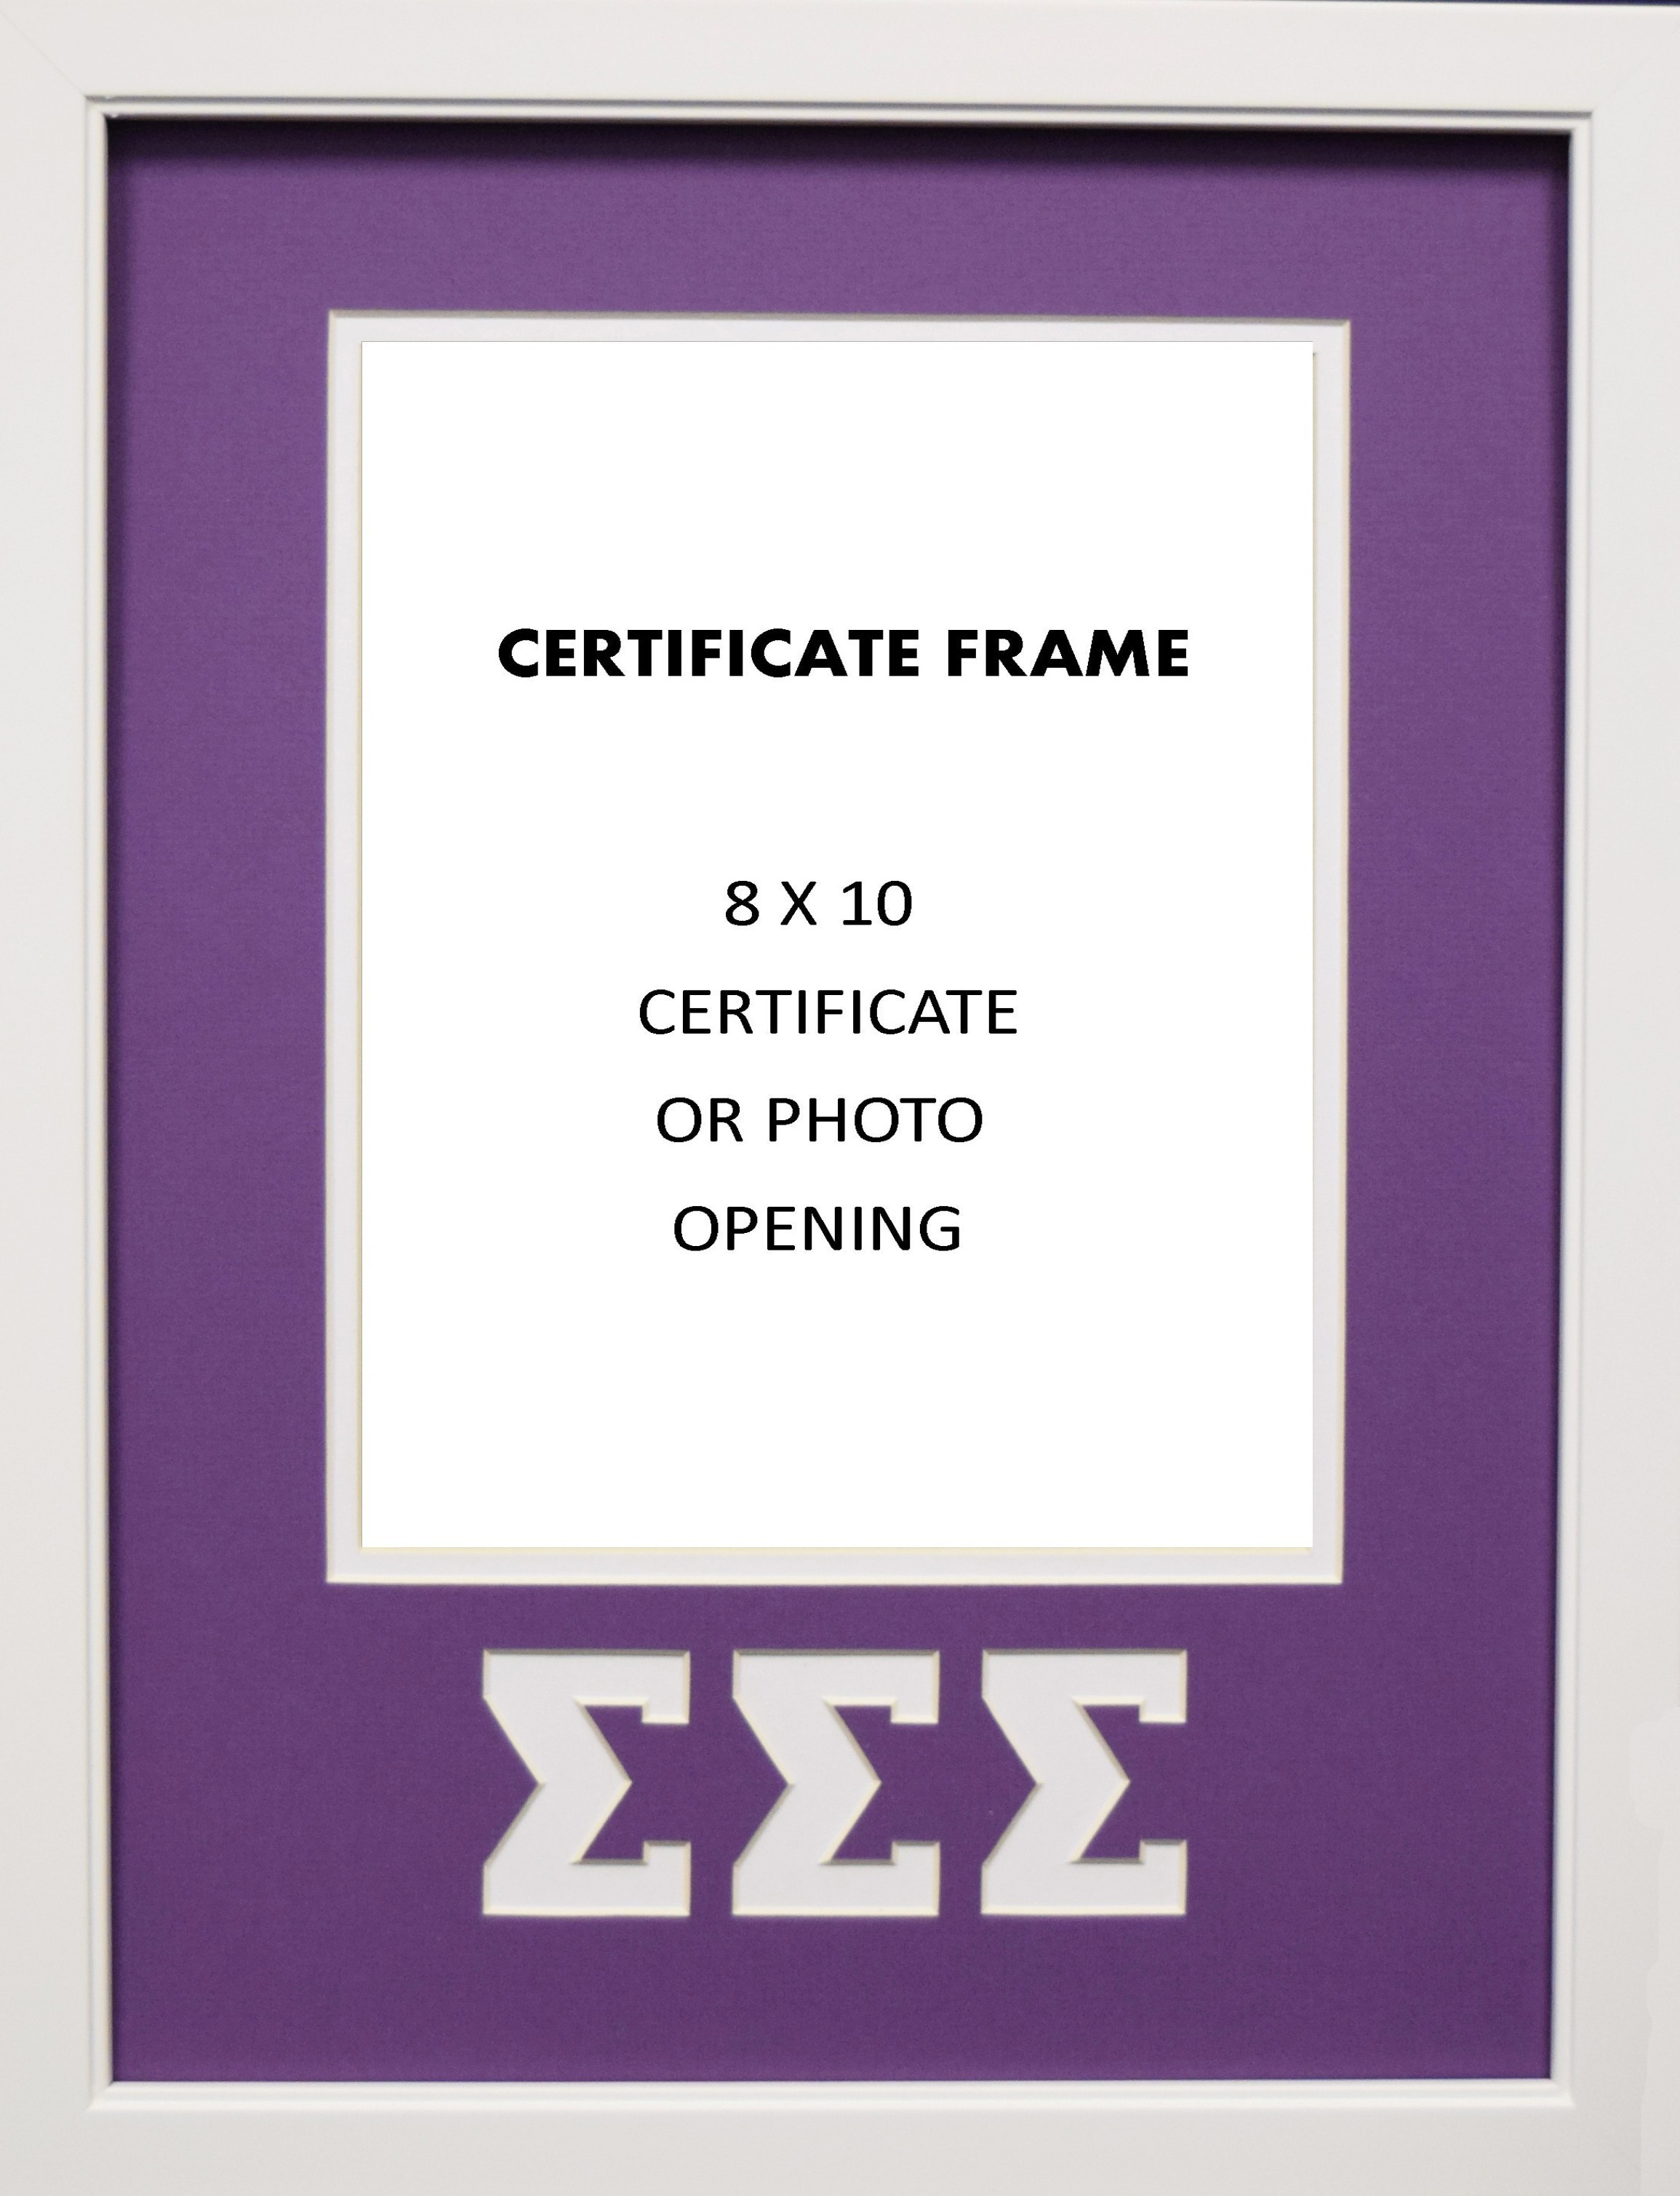 Sigma Sorority certificate or photo frame 8x10 opening wall mount ...